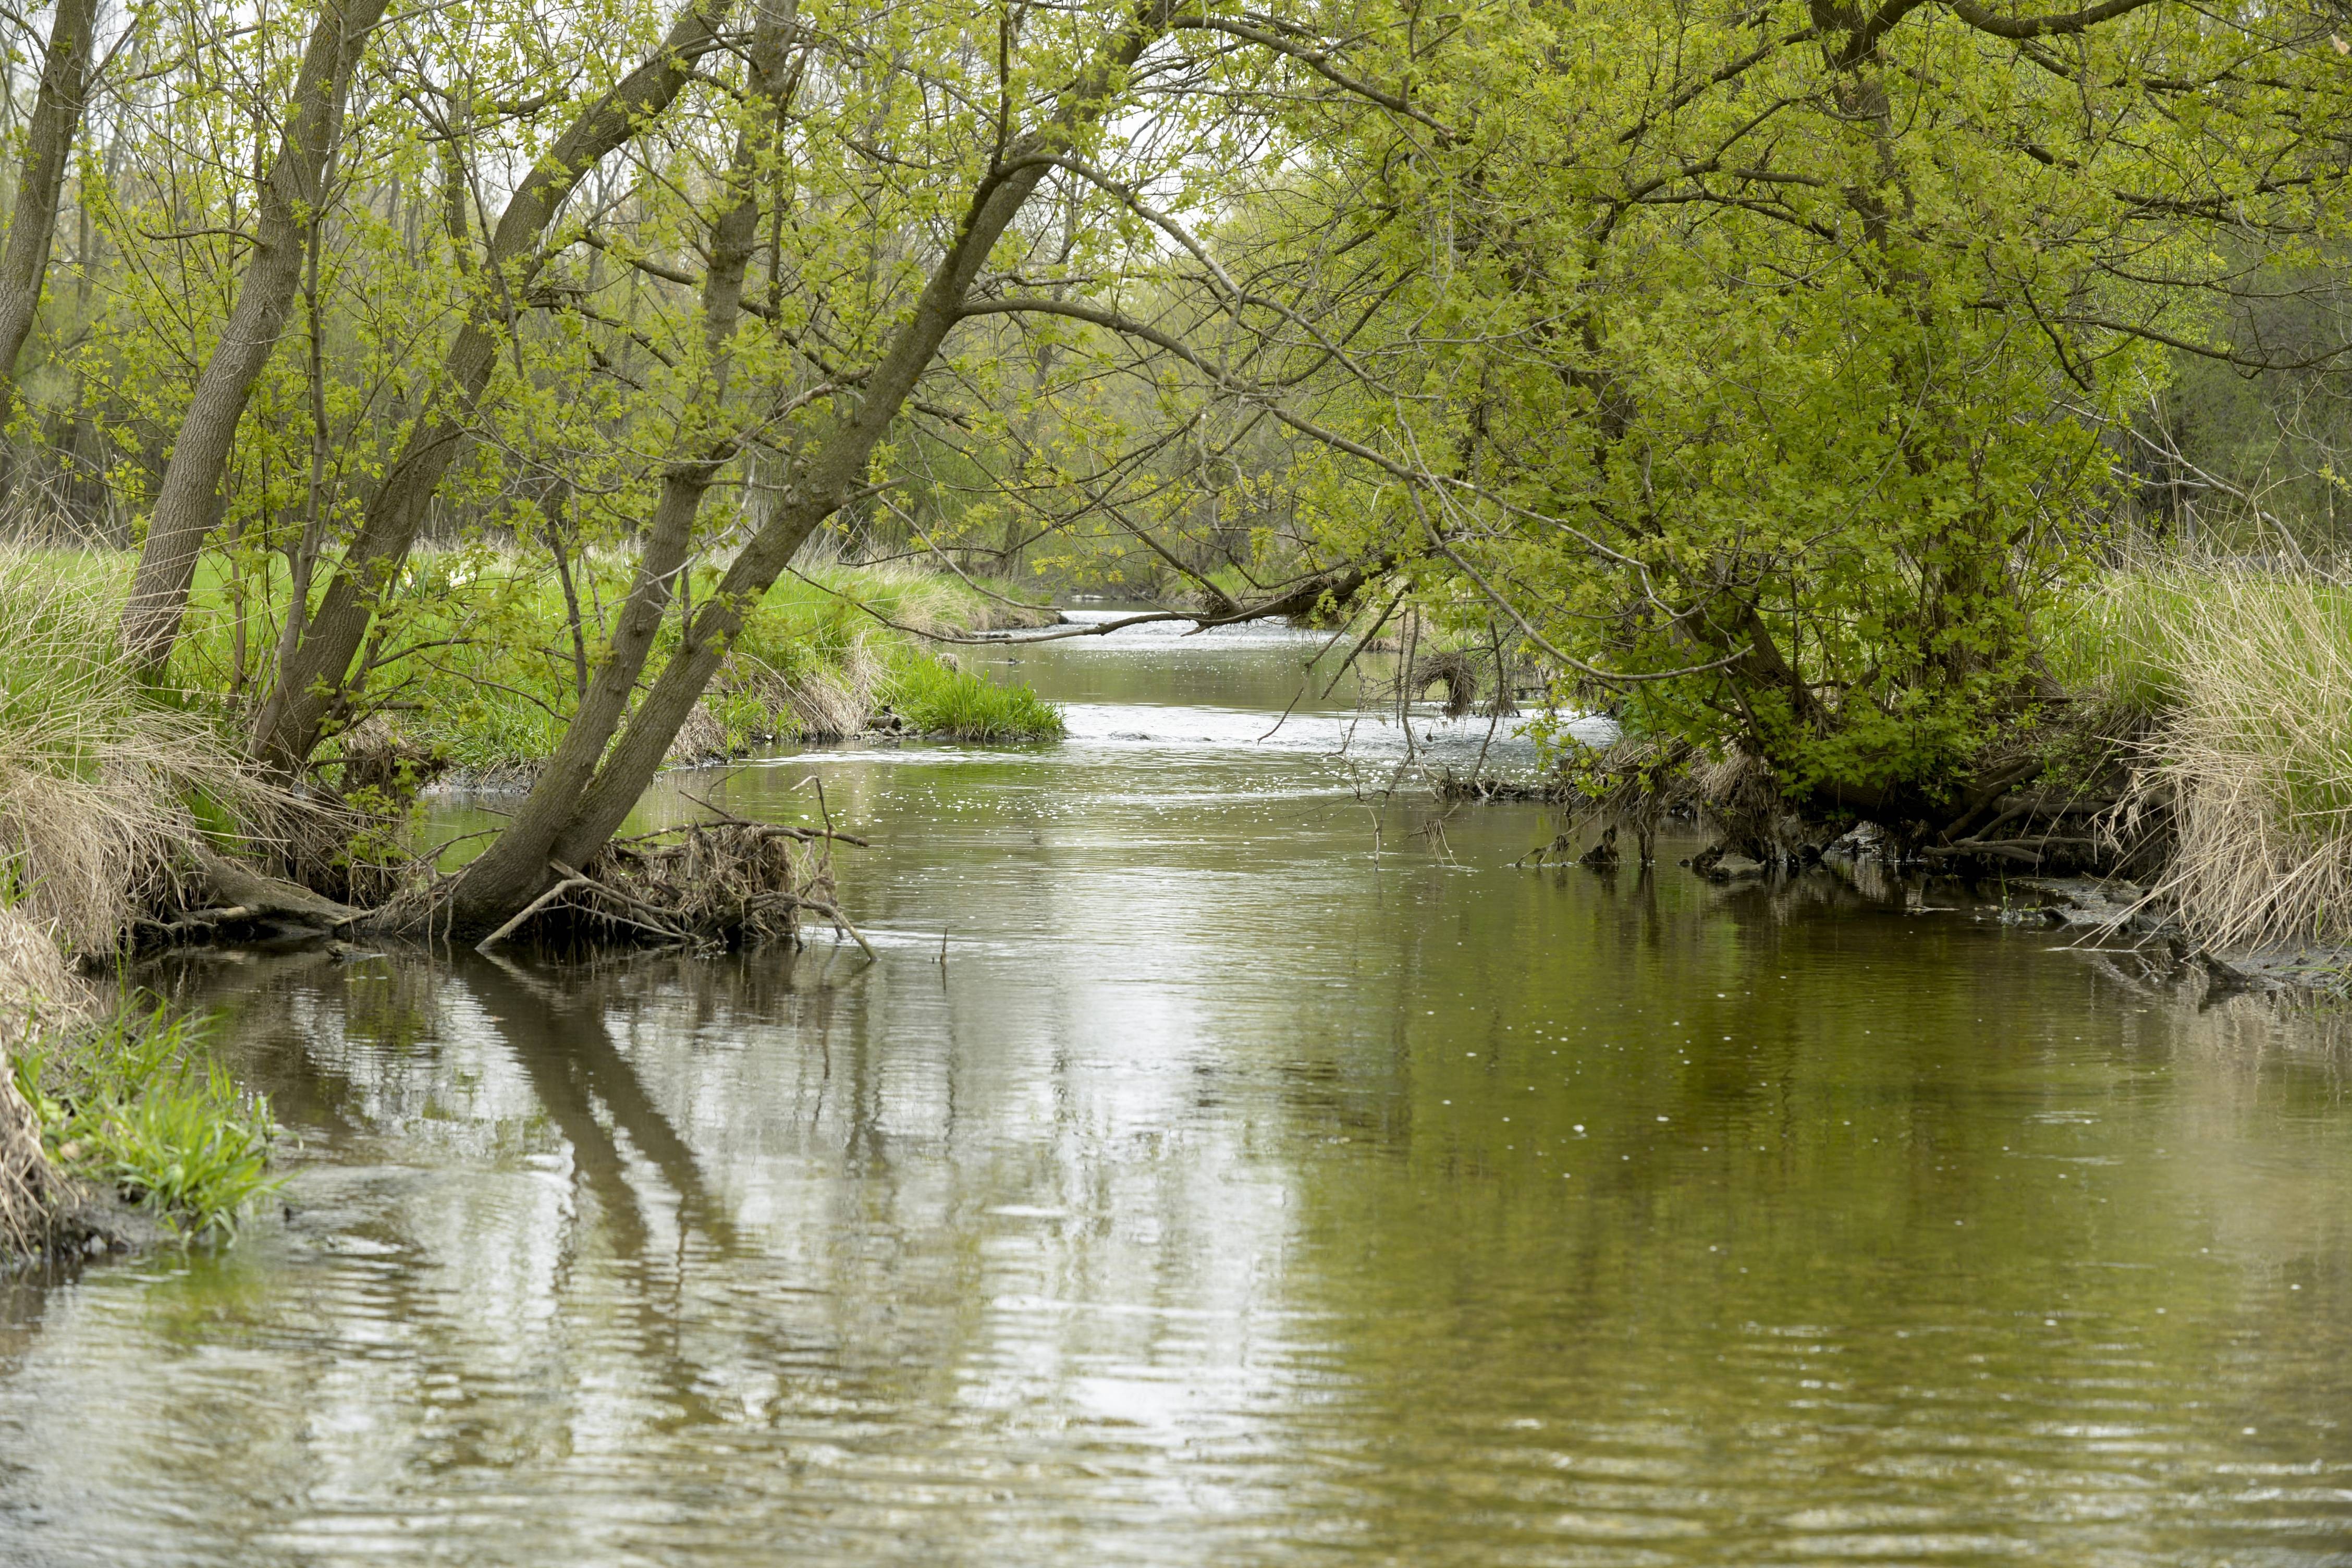 A planned restoration of Spring Brook Creek in St. James Farm Forest Preserve near Warrenville is expected to begin this year and be completed in 2015.